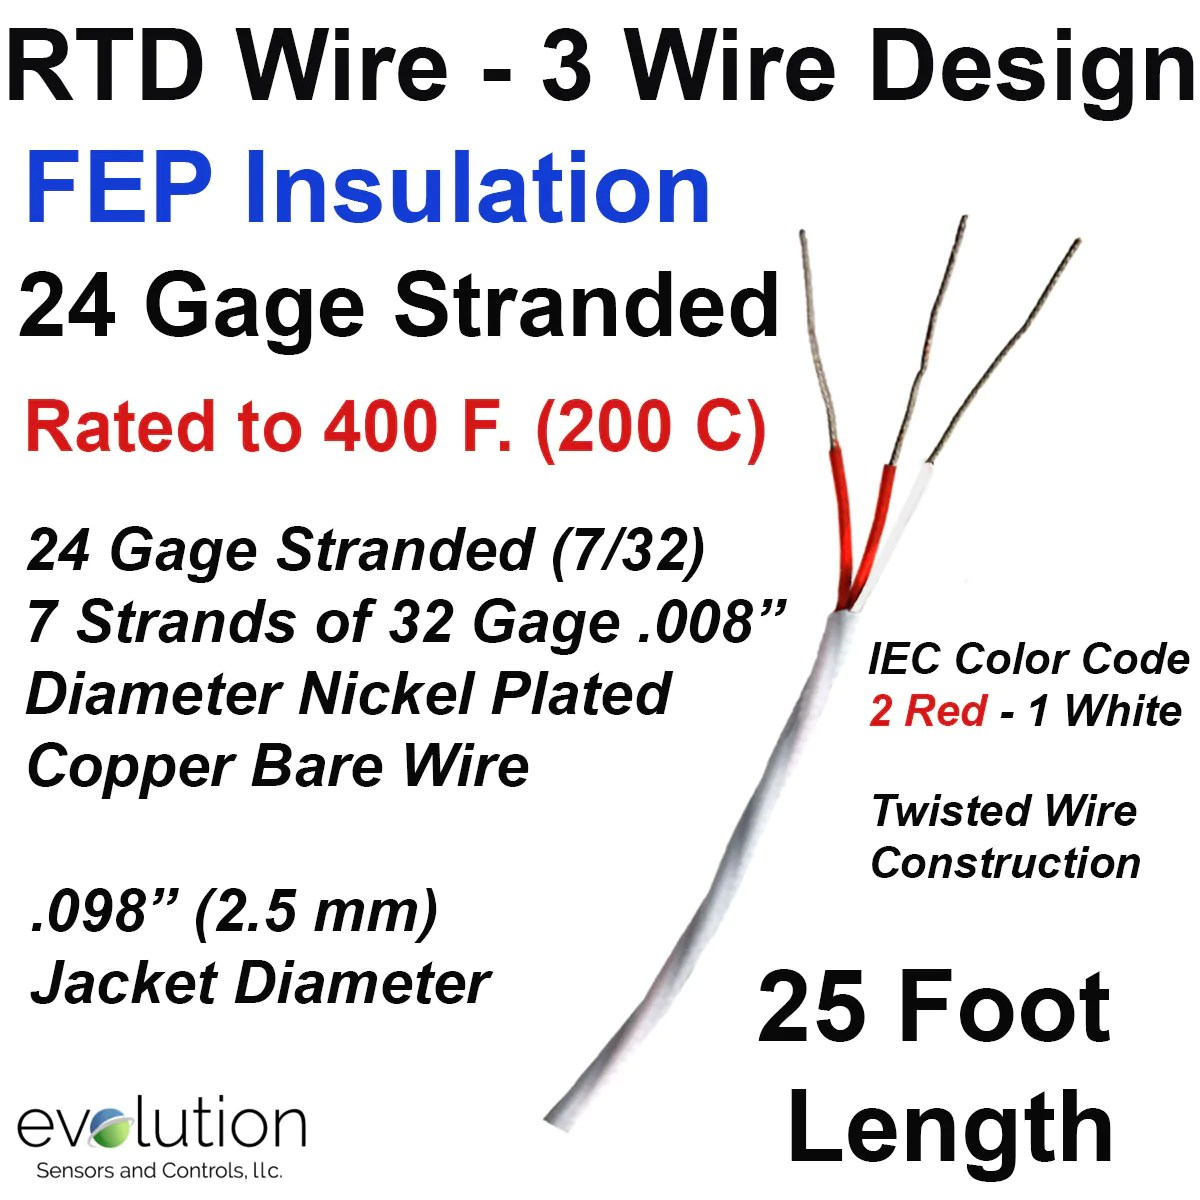 small resolution of rtd wire 3 wire design 24 gage stranded with fep insulation 25 rtd wiring color code